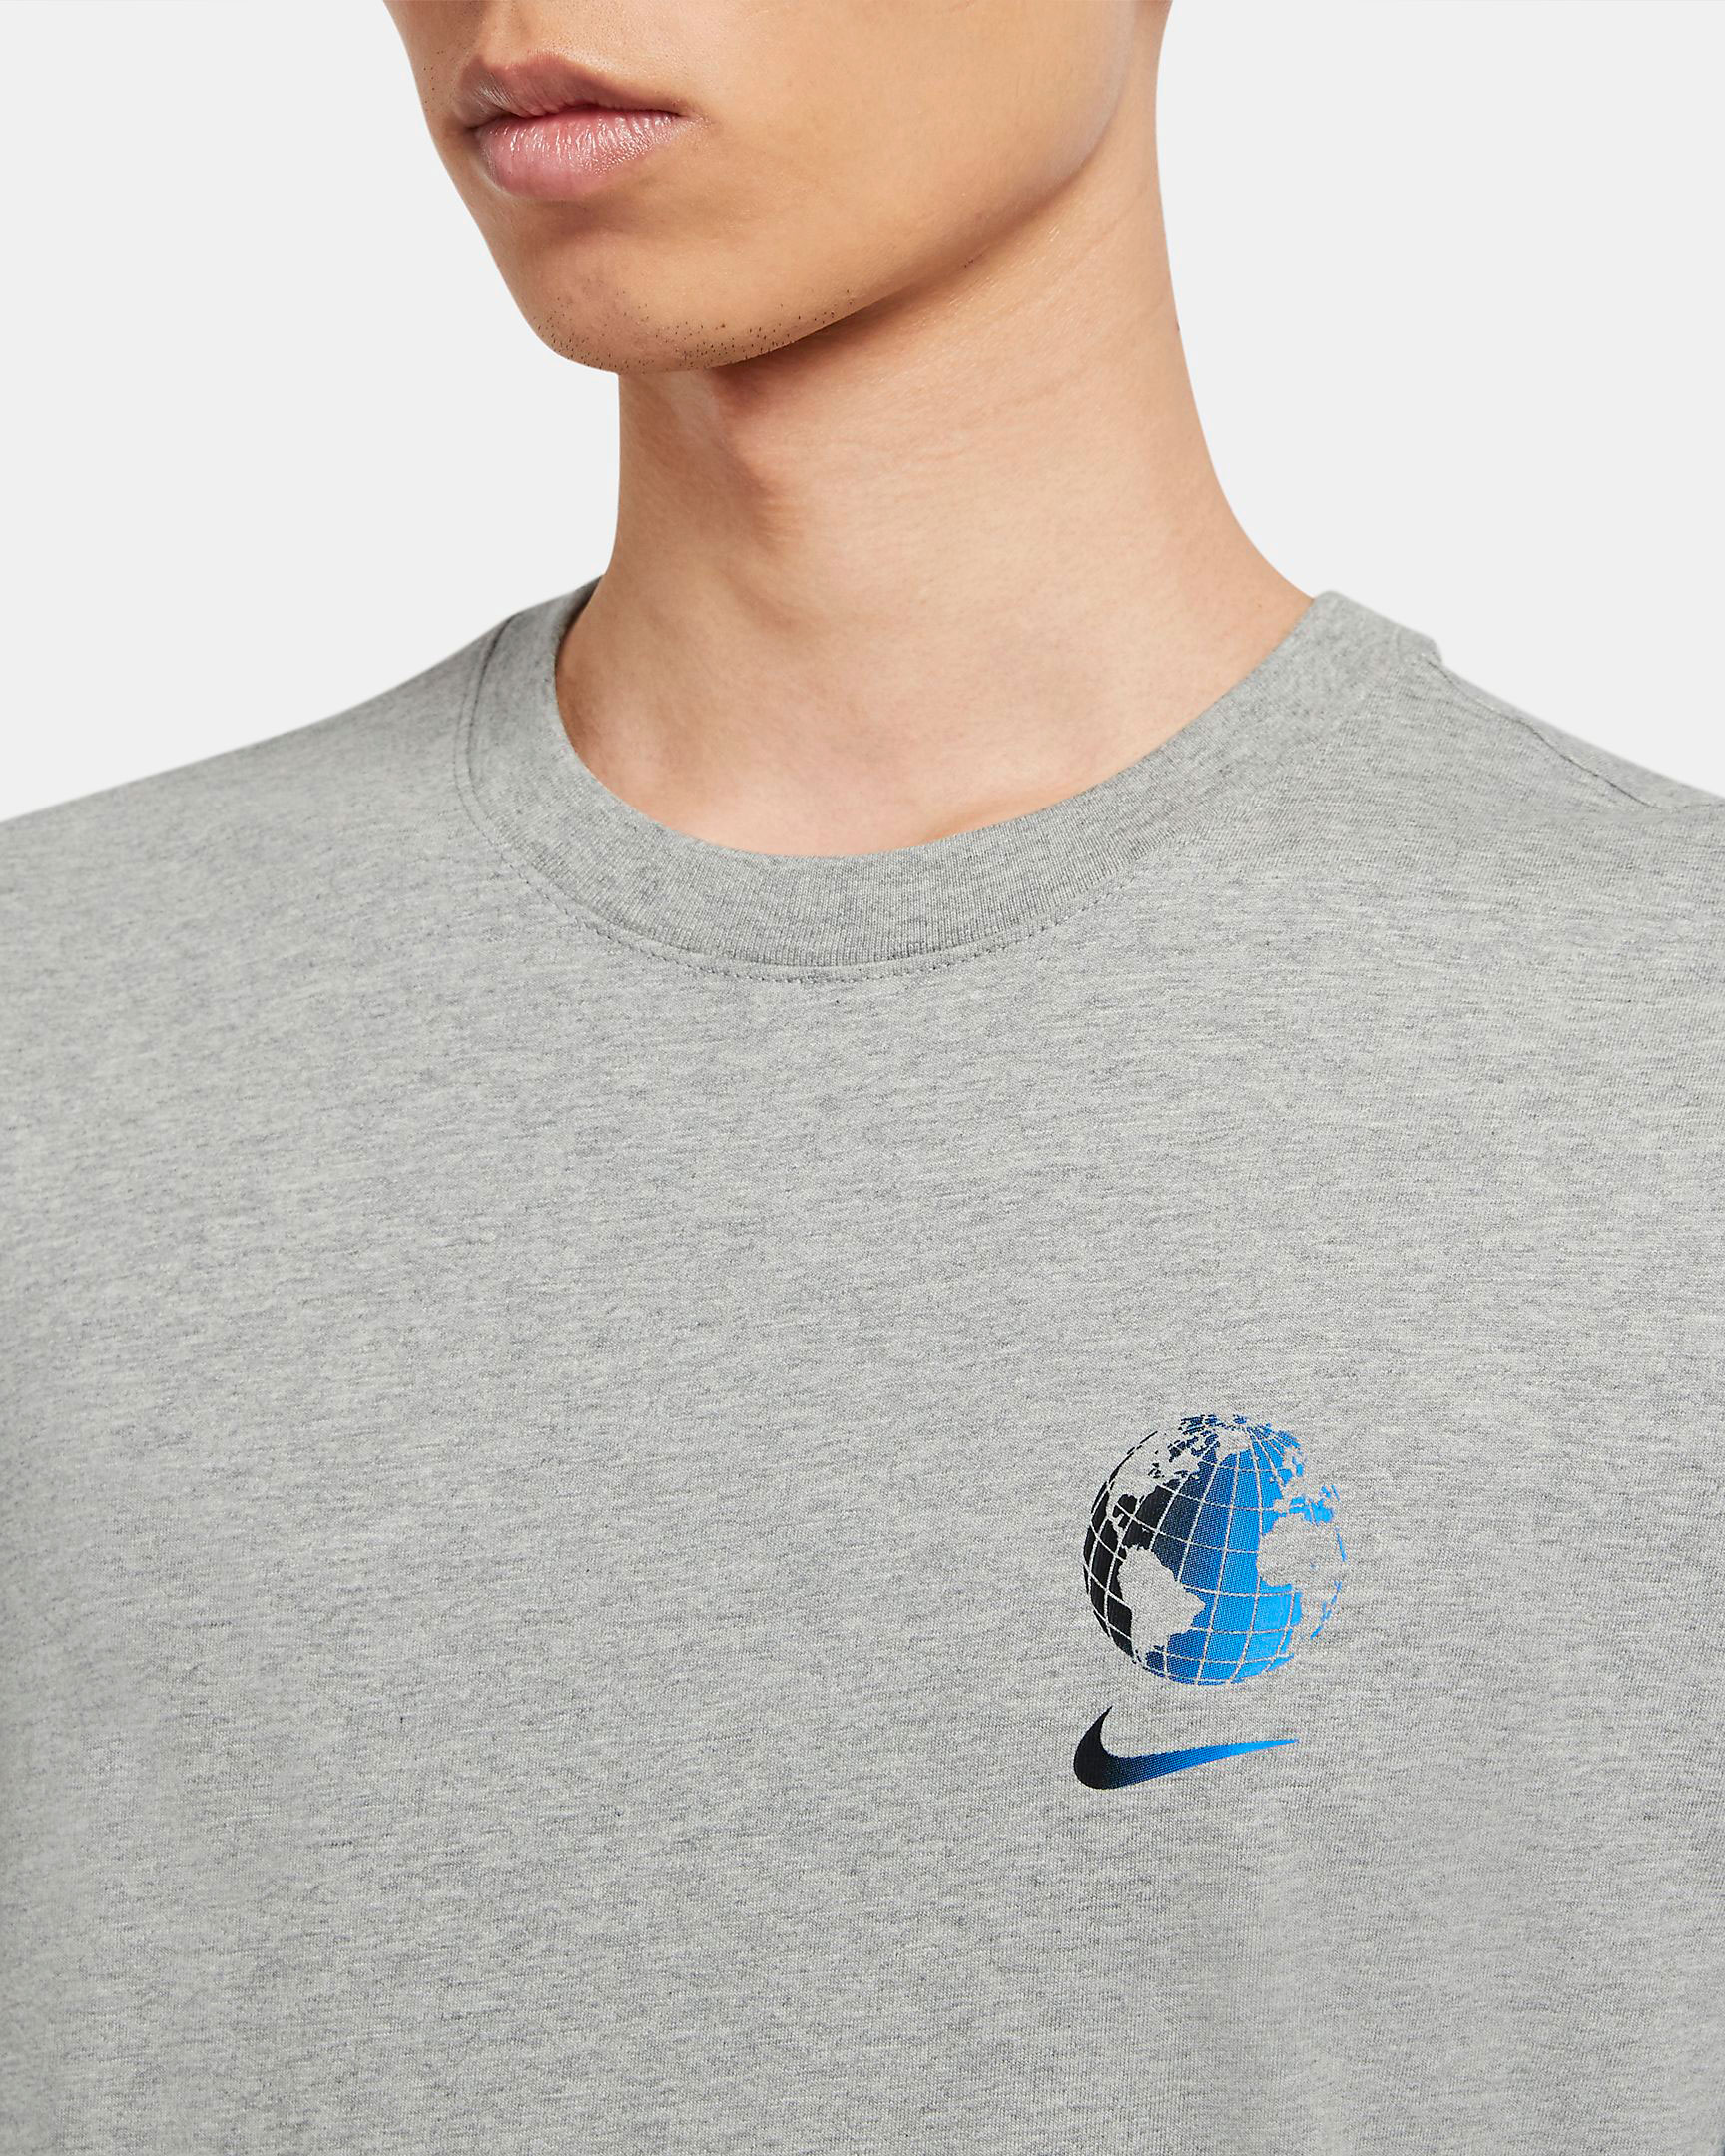 nike-worldwide-tee-shirt-grey-1